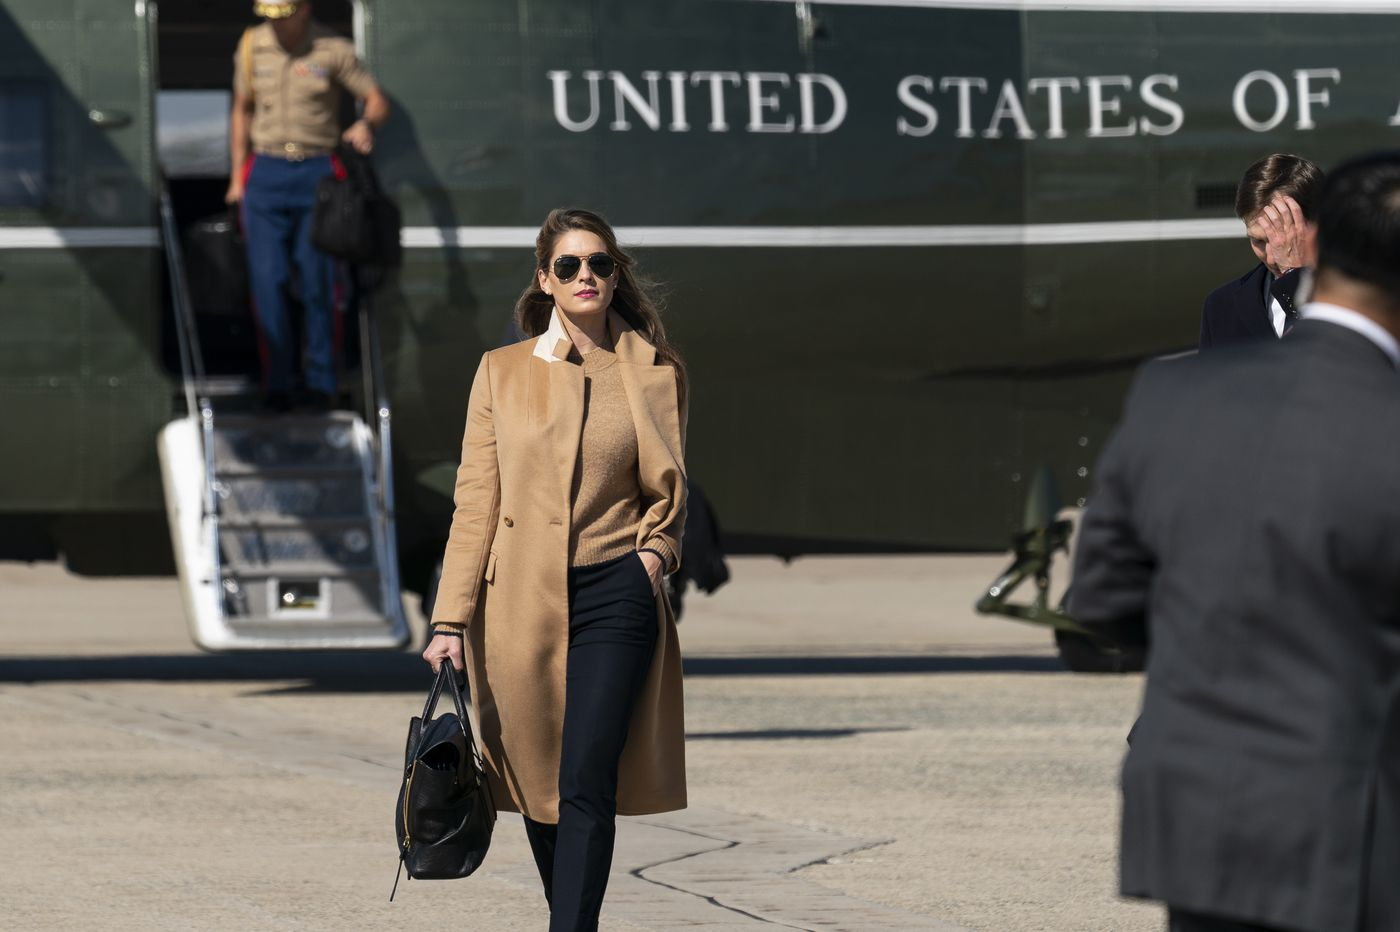 President and first lady have tested positive for COVID-19, after Hope Hicks announcement